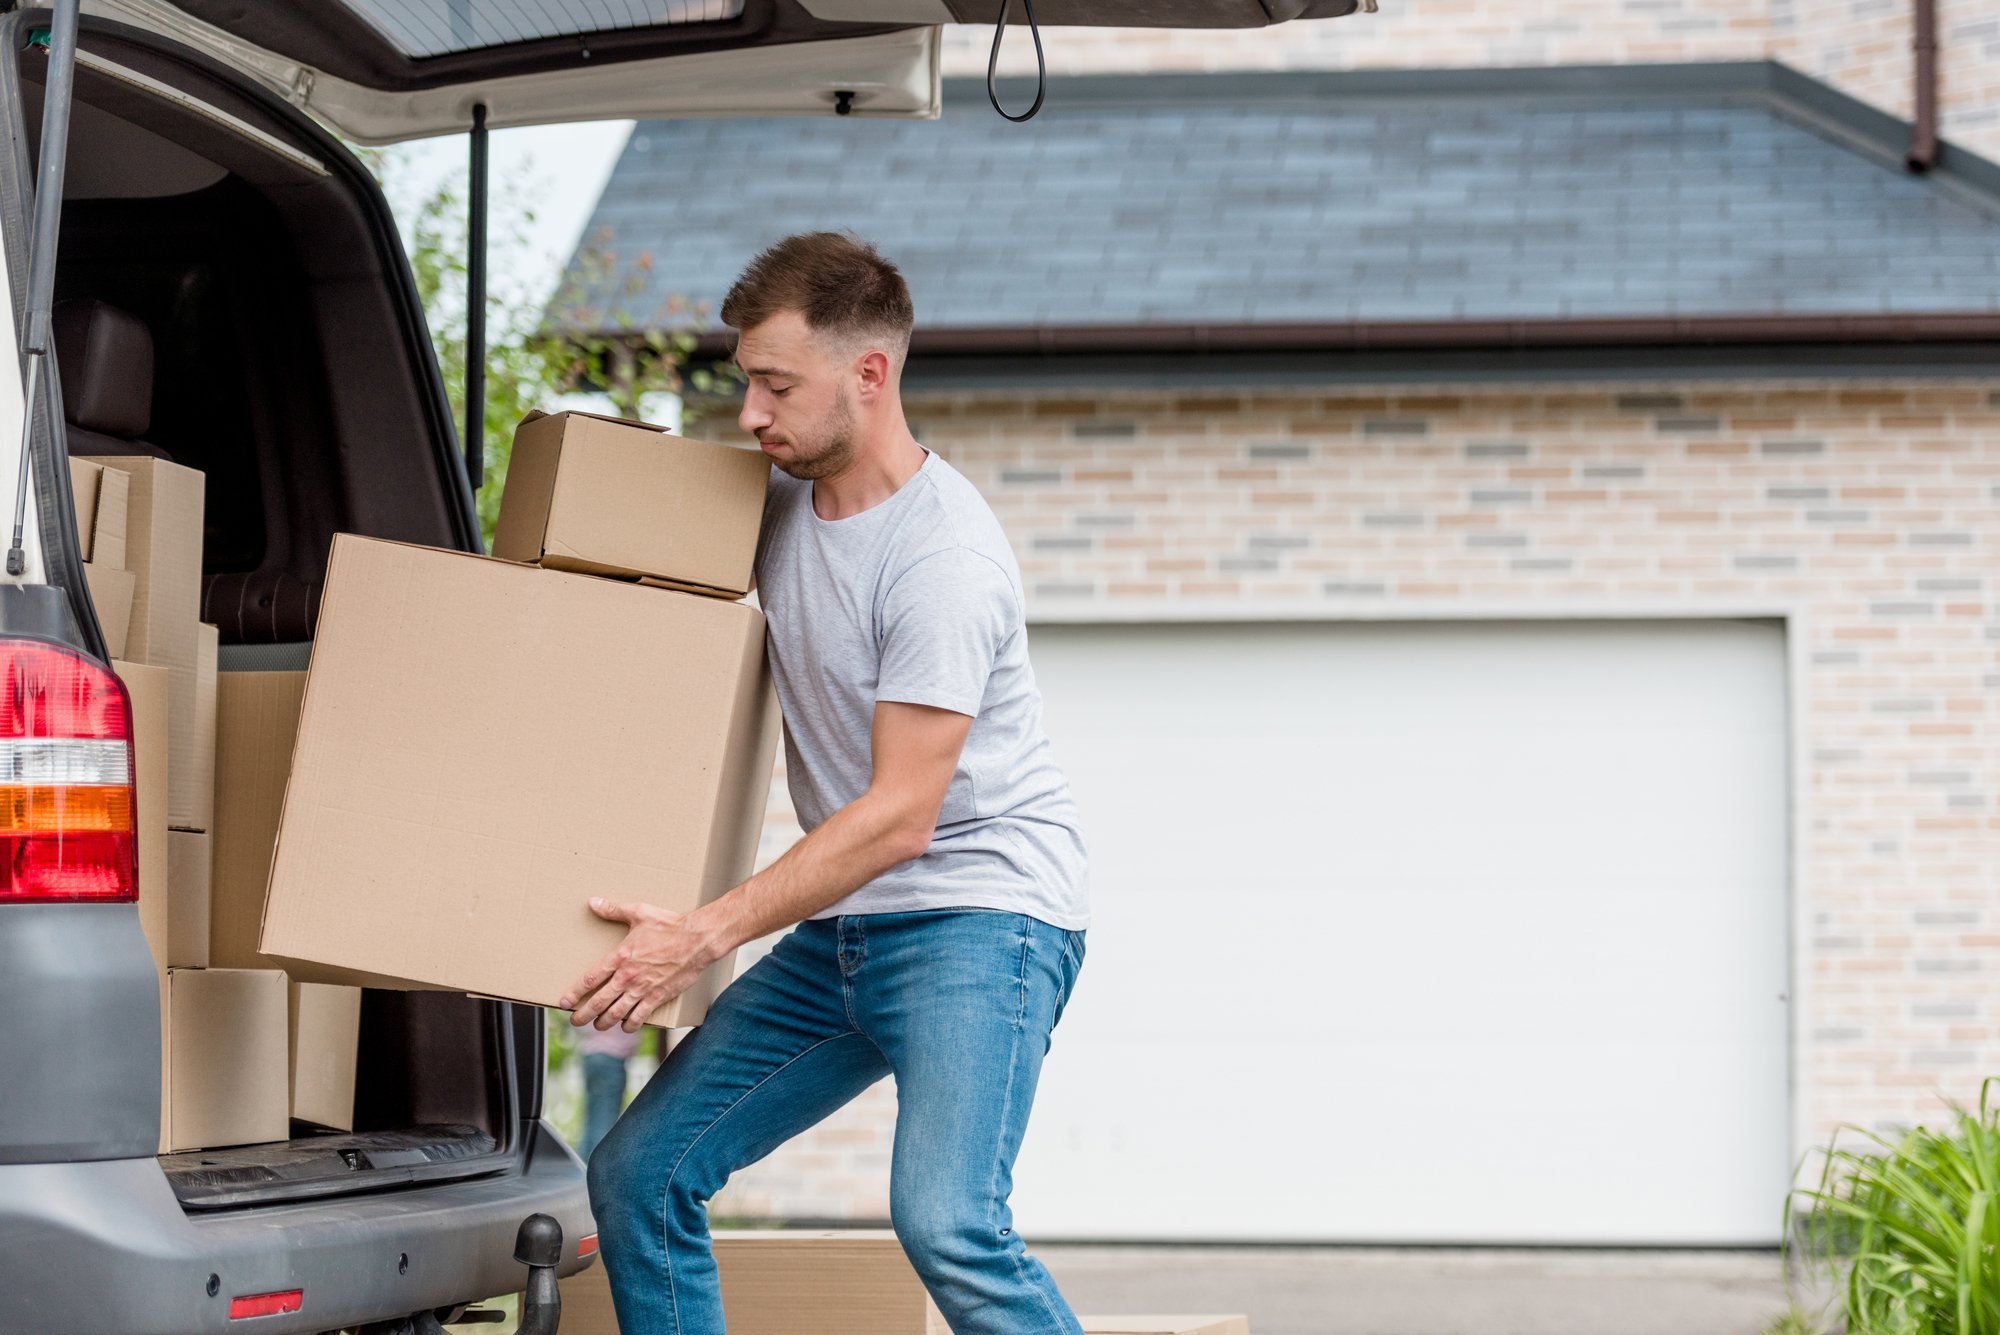 Strenuous young man moving boxes from car into new house